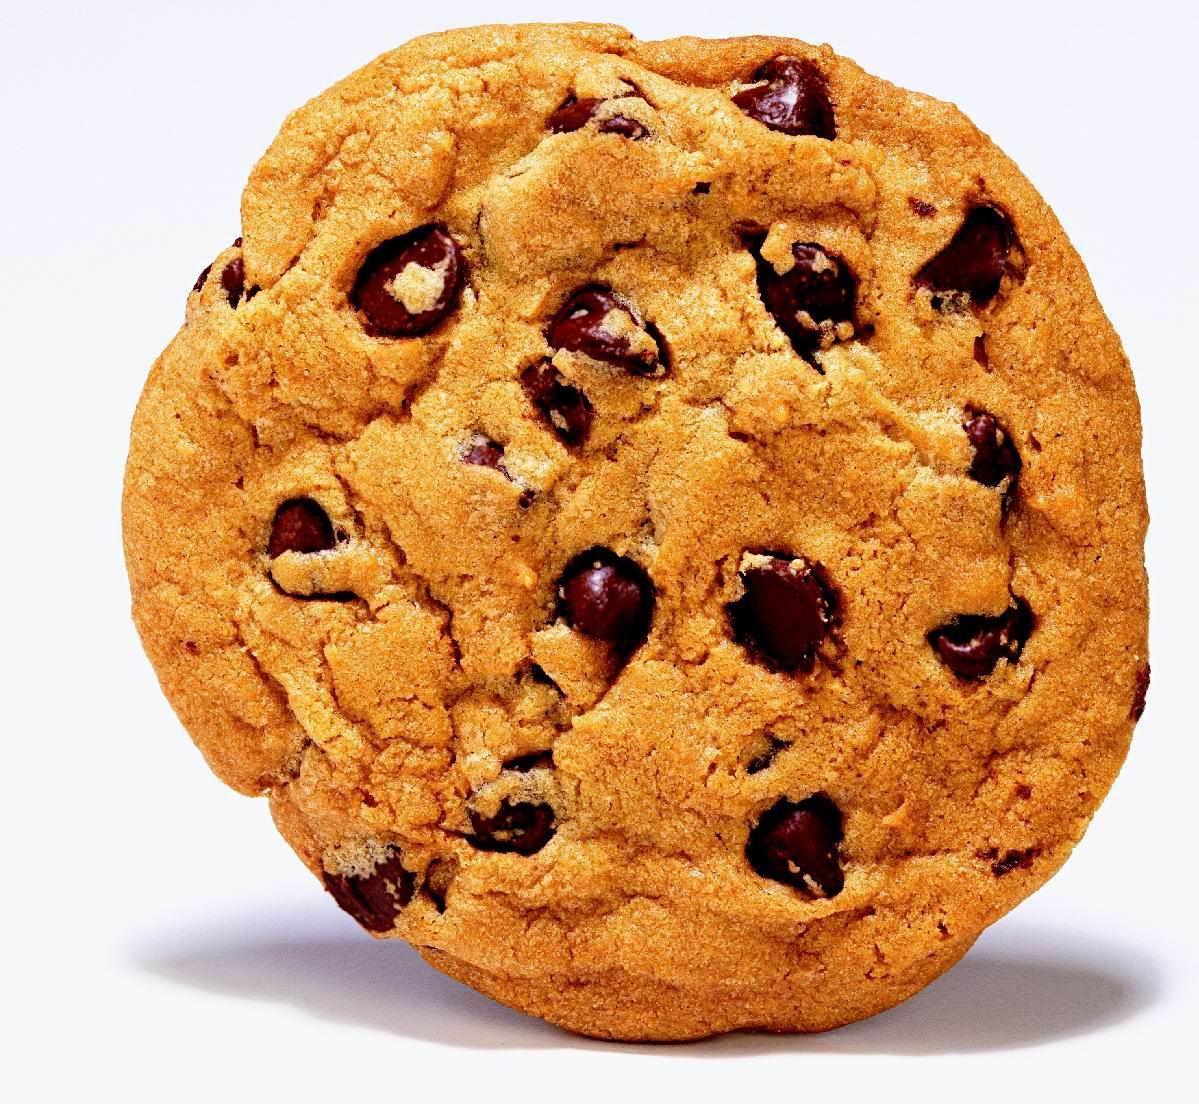 [Image: chocolate_chip_cookie.jpg]